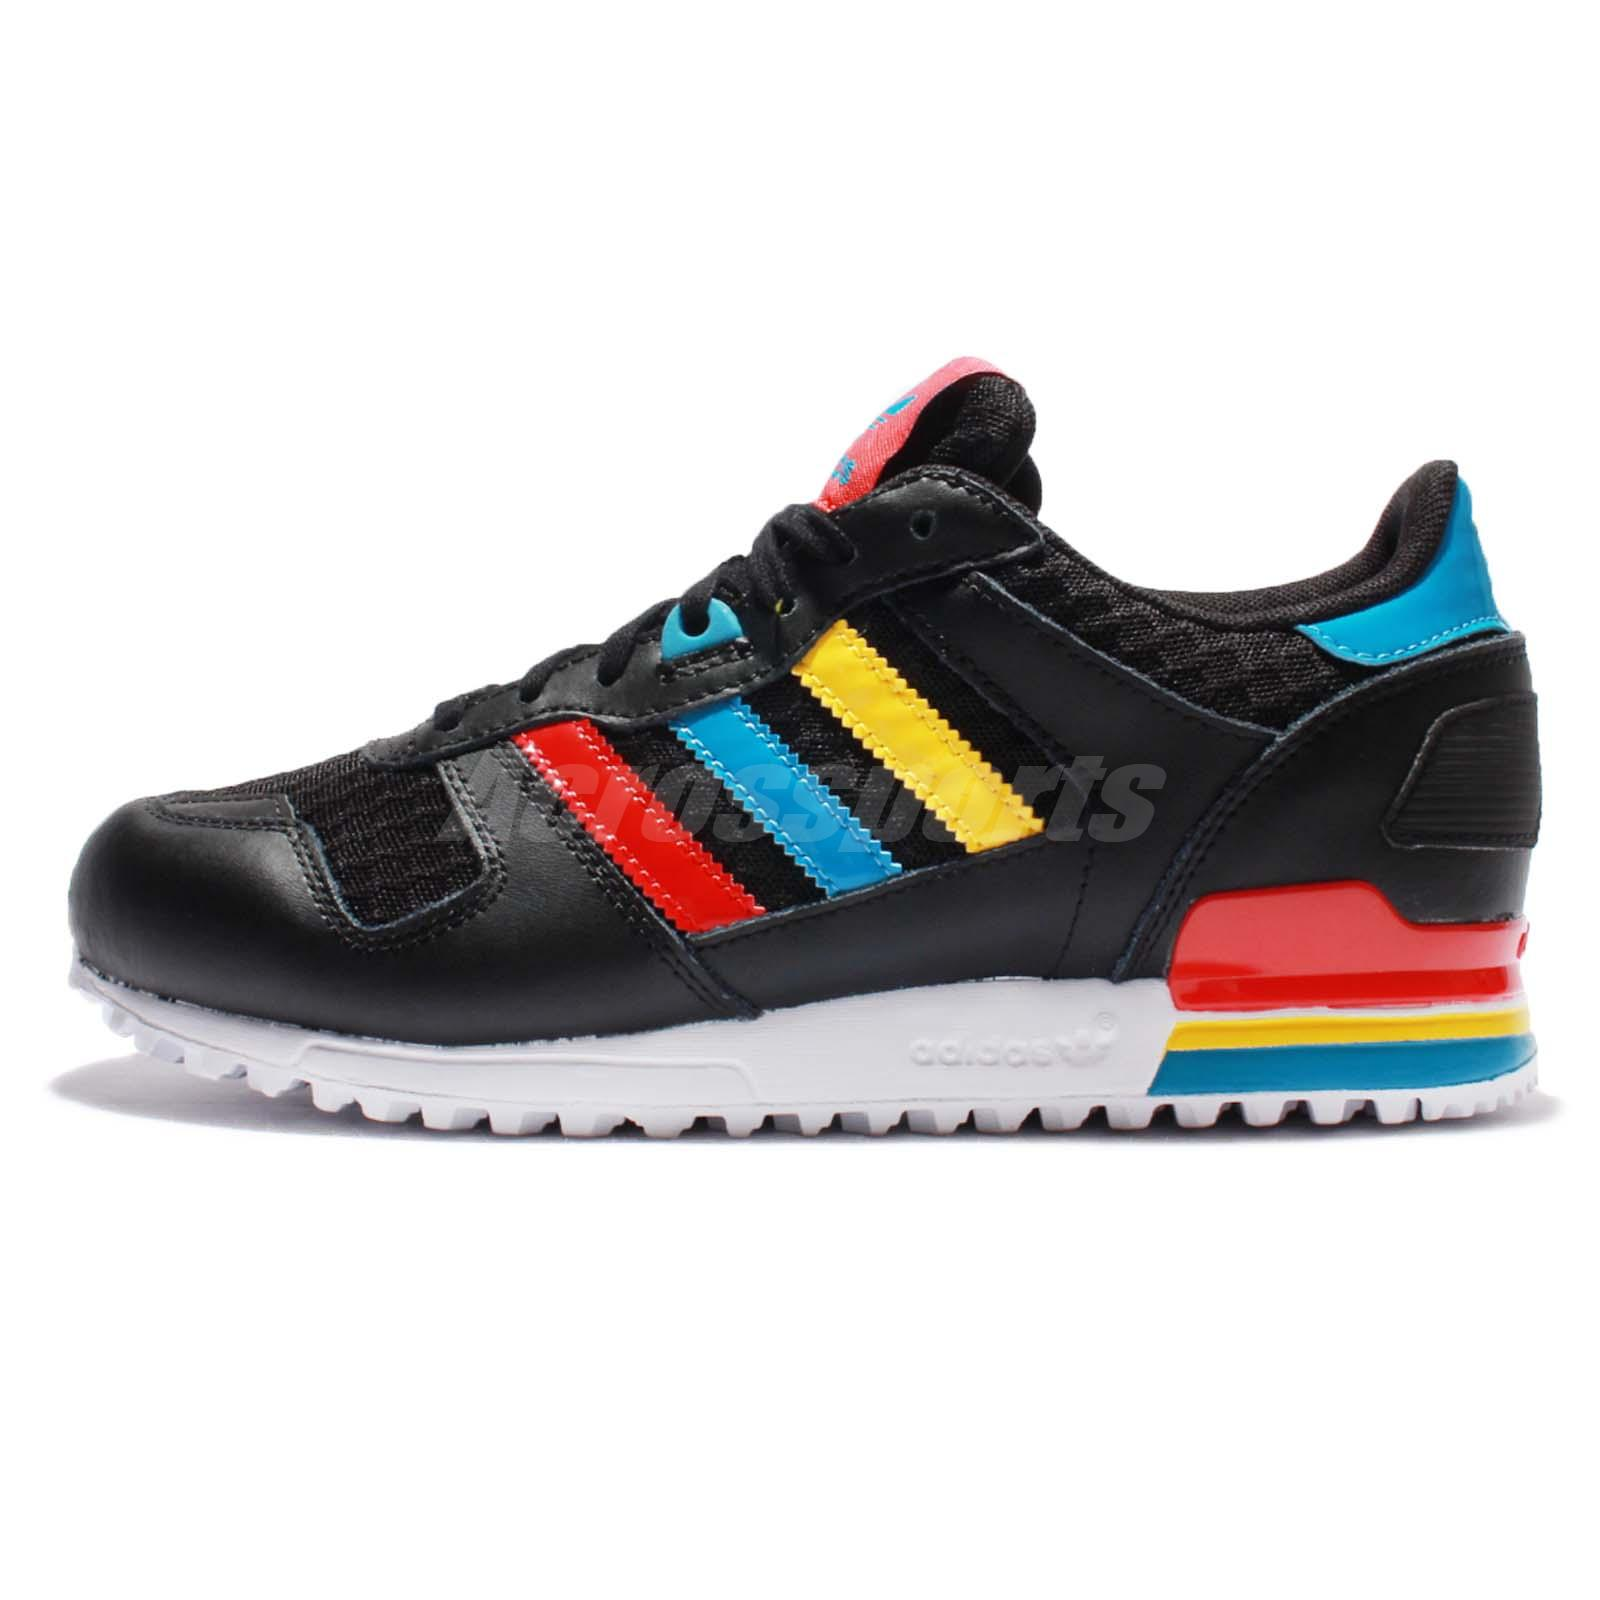 9654d974f ... low price adidas originals zx 700 w black red blue yellow womens shoes  sneakers ba9311 b4ee1